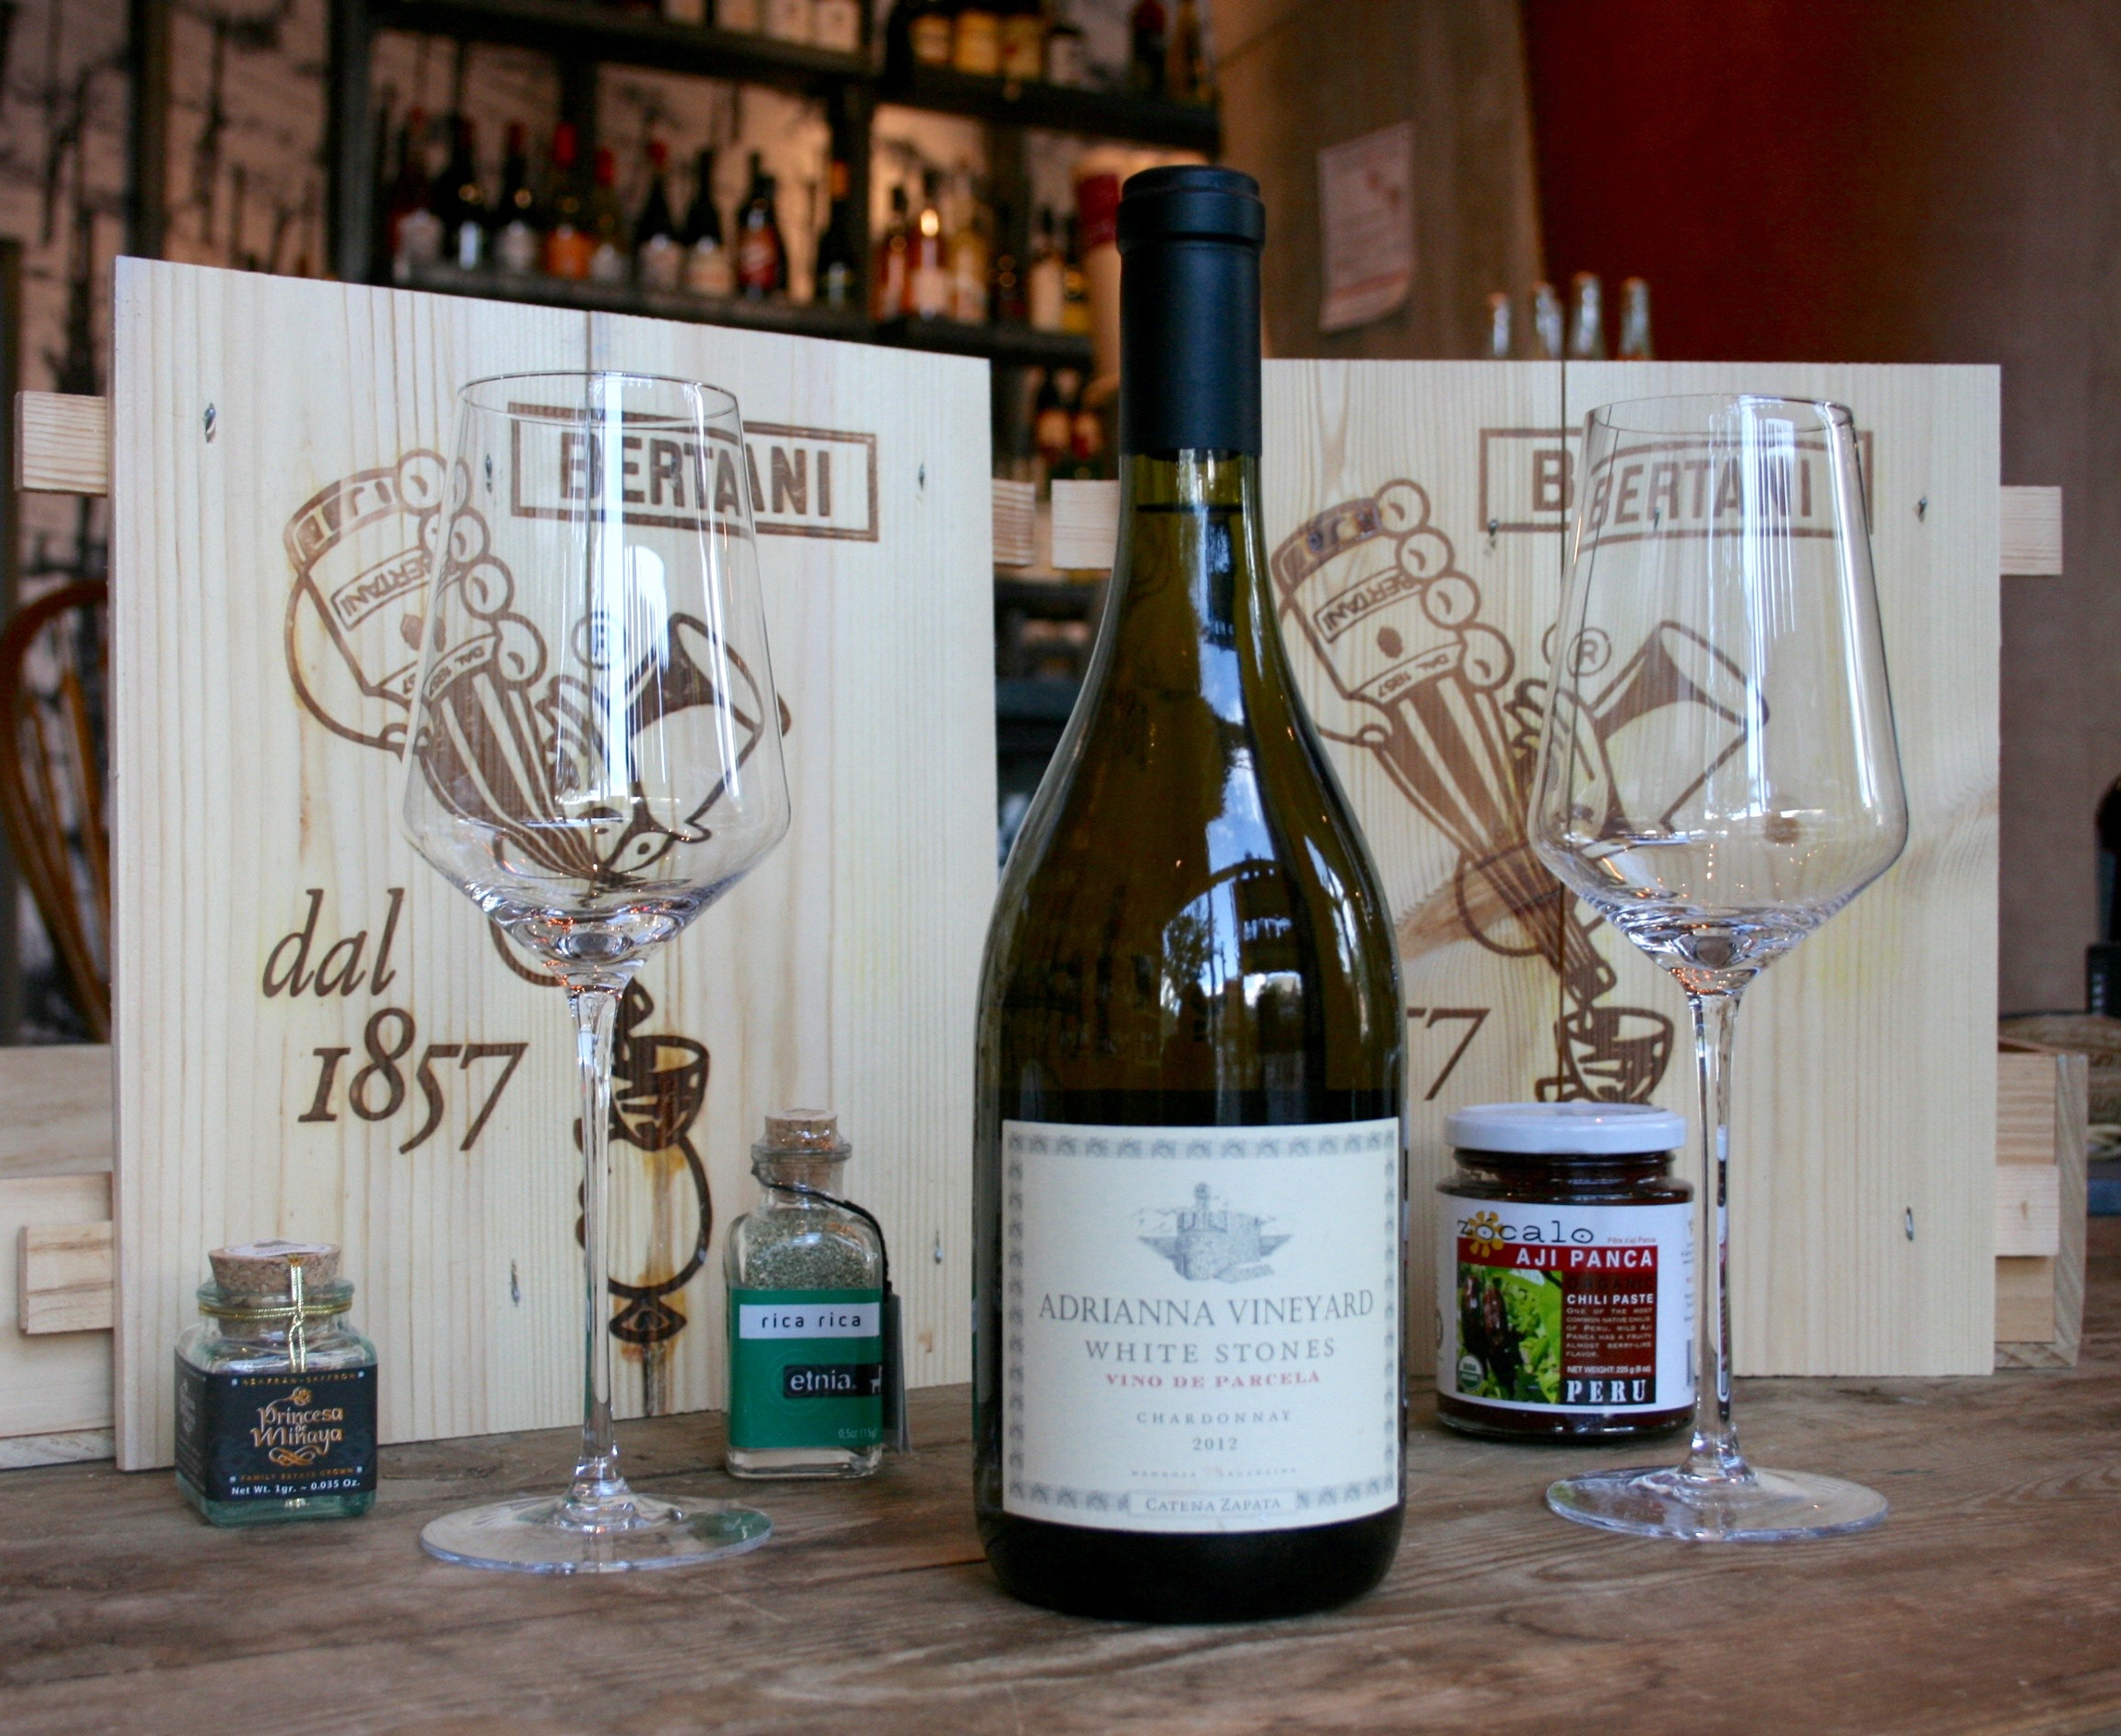 """Adrianna Vineyard """"White Stones"""" - Chardonnay 2012 - As a bold, rich white with some age to it, this wine should breath. As a white, it will have no sediment. Decanting not recommended, since it will be difficult to keep the wine chilled once in the decanter."""